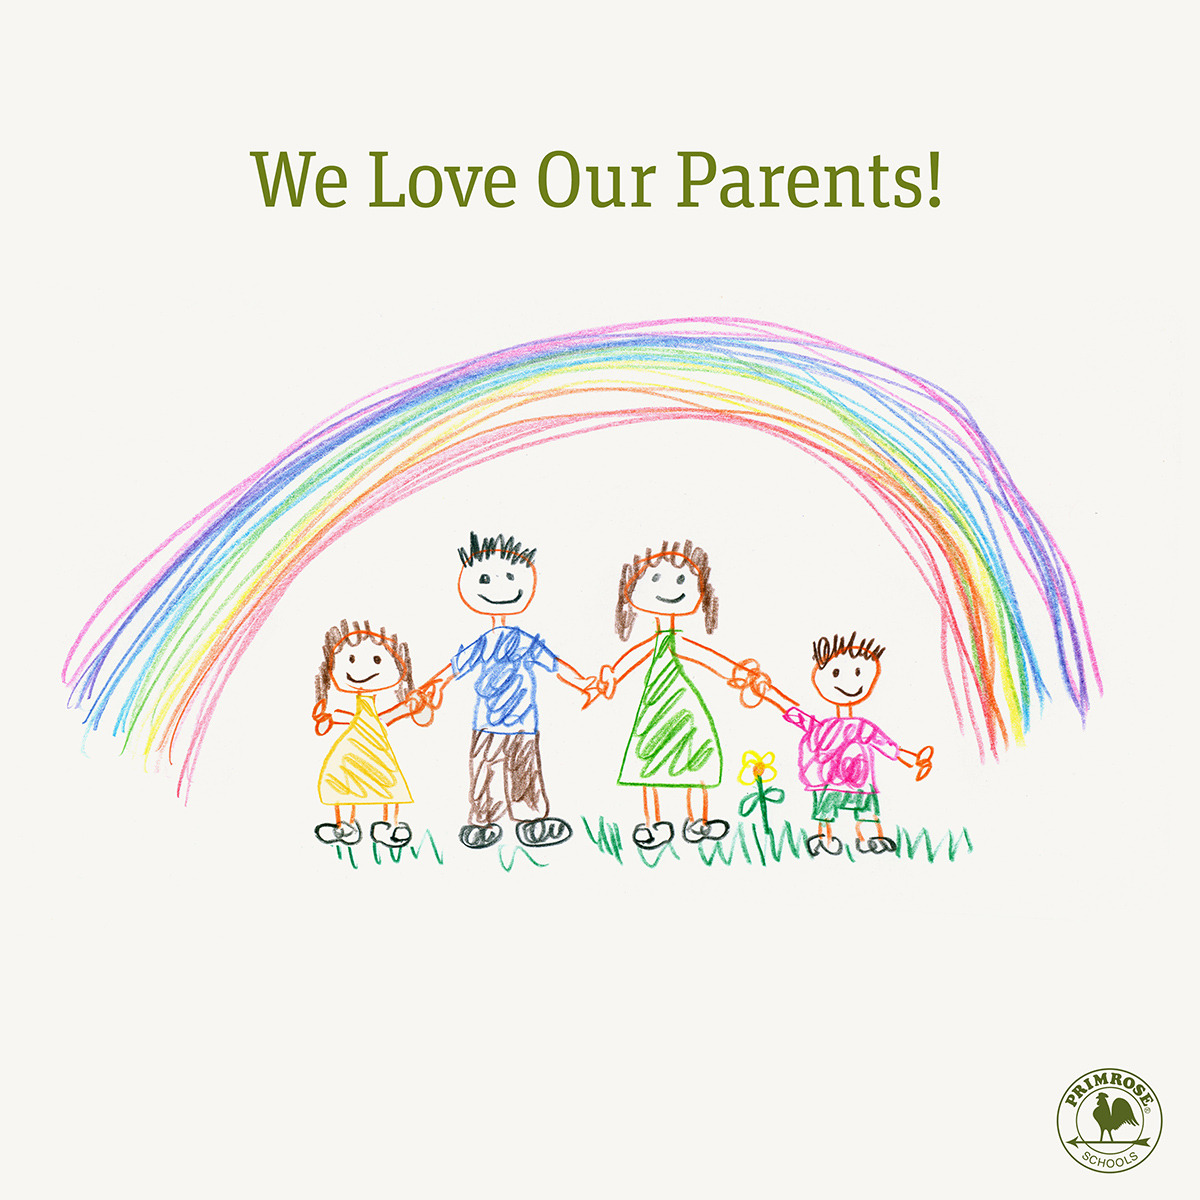 We love our parents poster featuring a young child's drawing of a mother, father, daughter and son standing under a rainbow